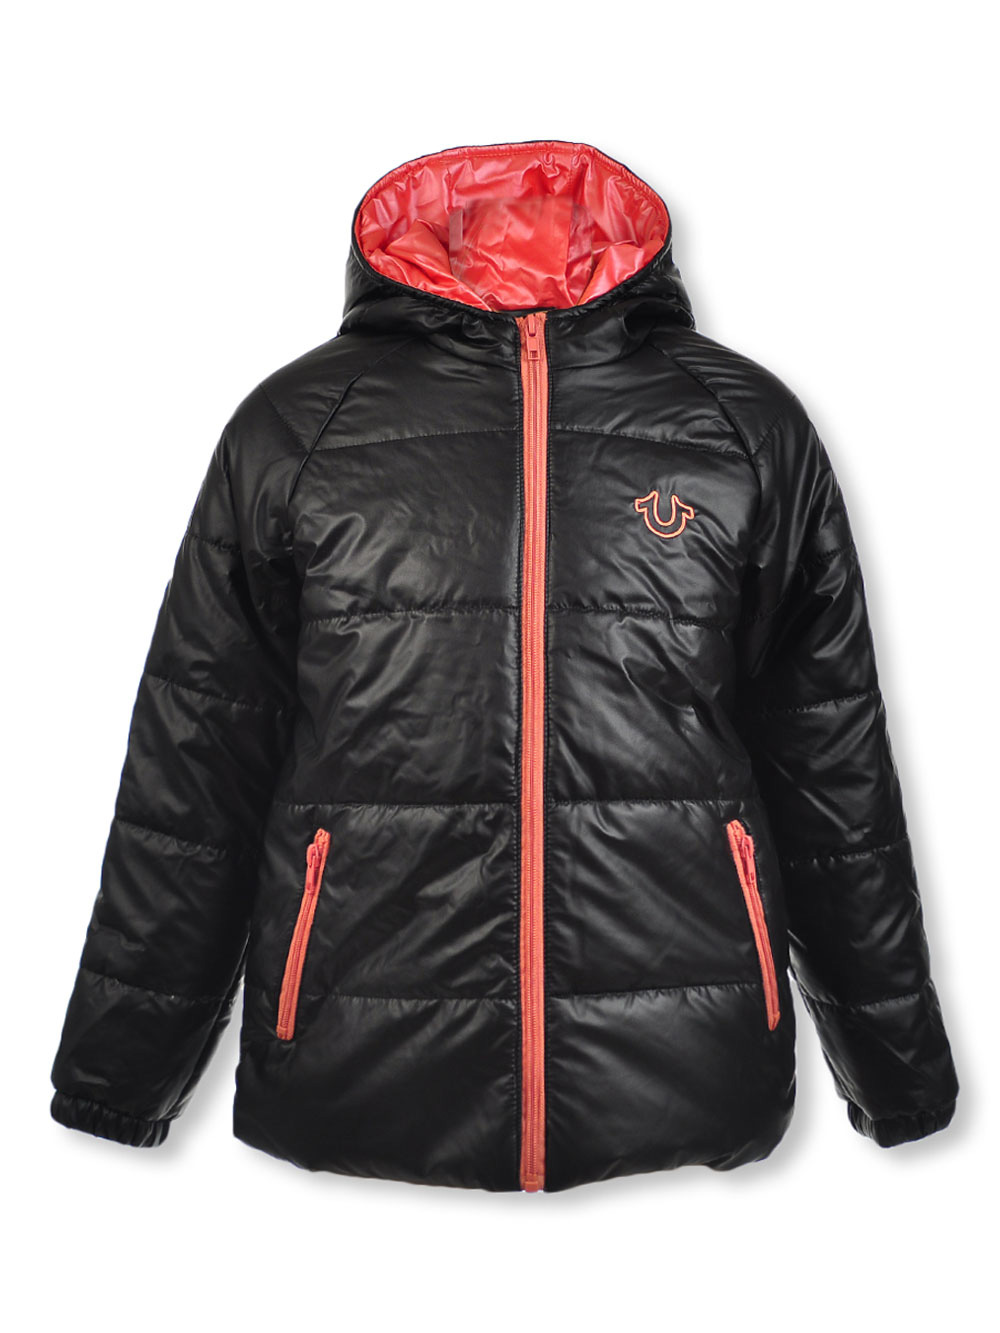 Size 8-10 Light Jackets for Girls